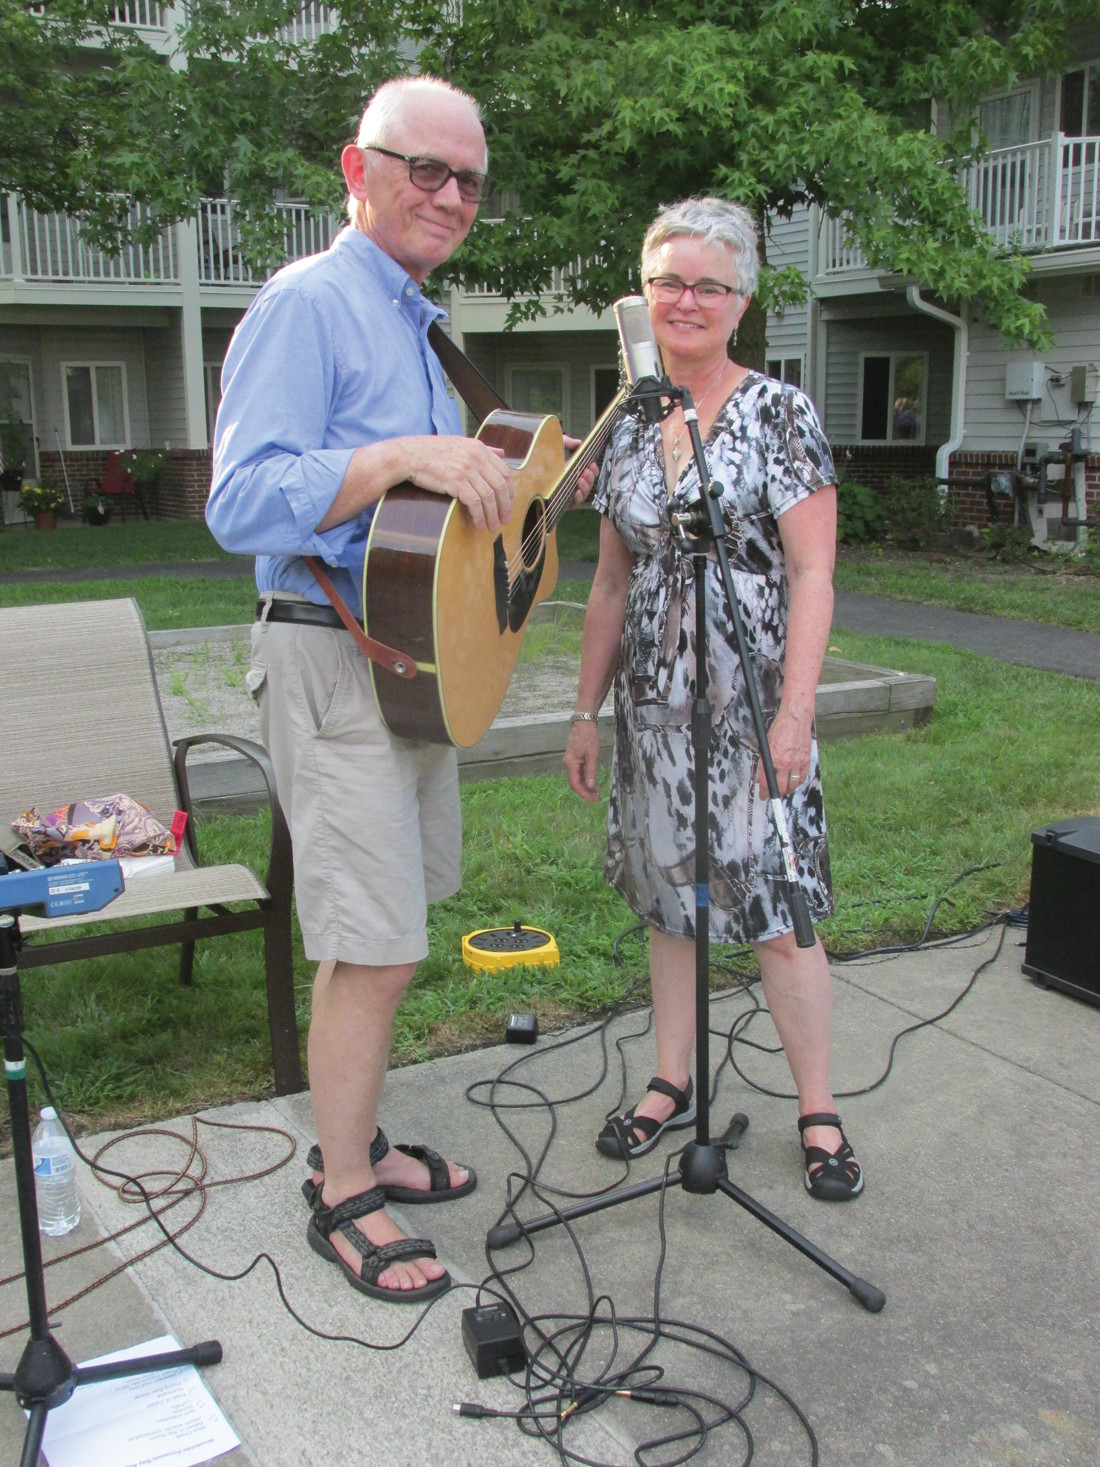 MUSIC MAKERS: Ned and Alice Pace, who play music under the title of Well Ordered Transitions, helped make last week's Christmas in July Barbeque special at Brookdale Pocasset Bay in Johnston.